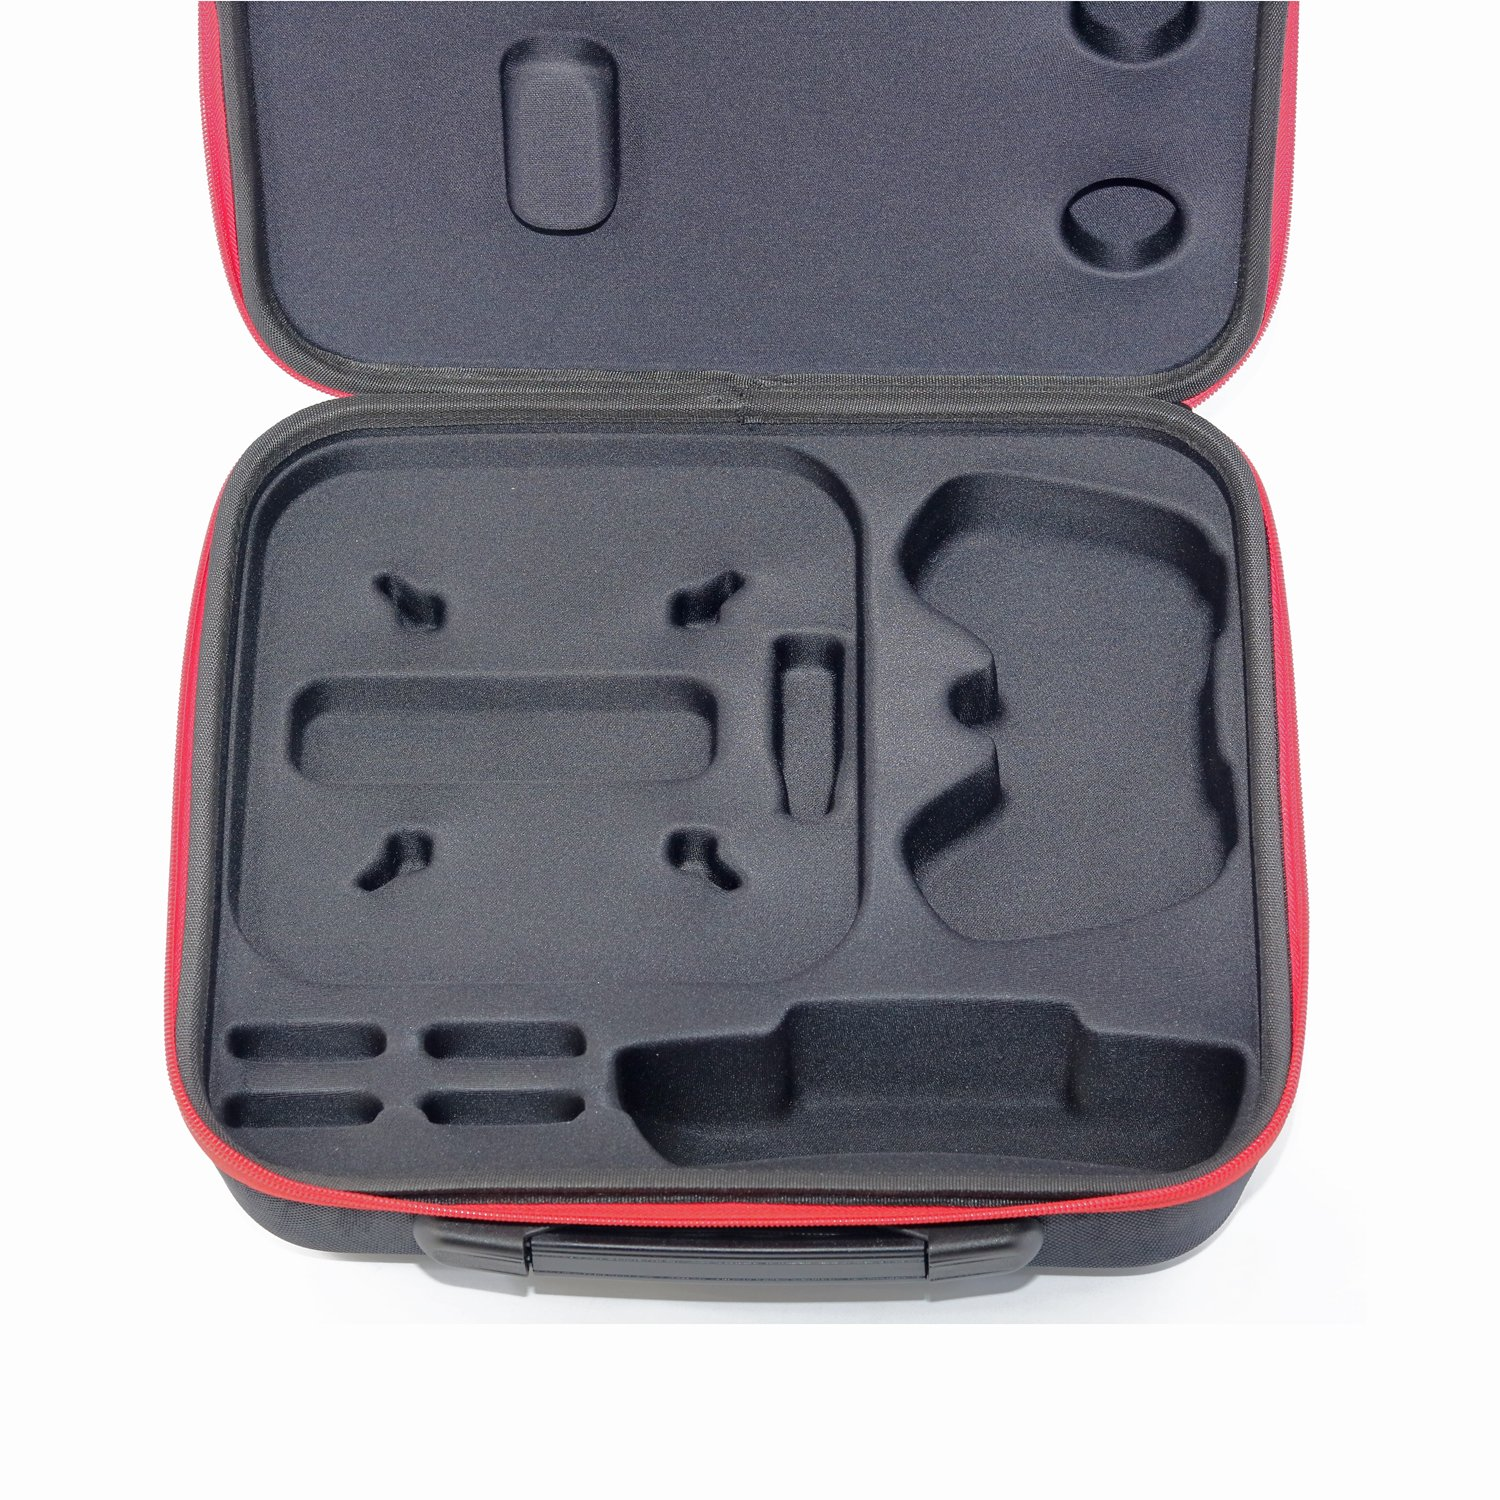 Amazon.com : Hard Shell Carrying Case Waterproof Shoulder Bag Box for Parrot Mambo FPV, Parrot Mambo, Mambo Mission, Mambo Fly Drone and Accessories Storage ...